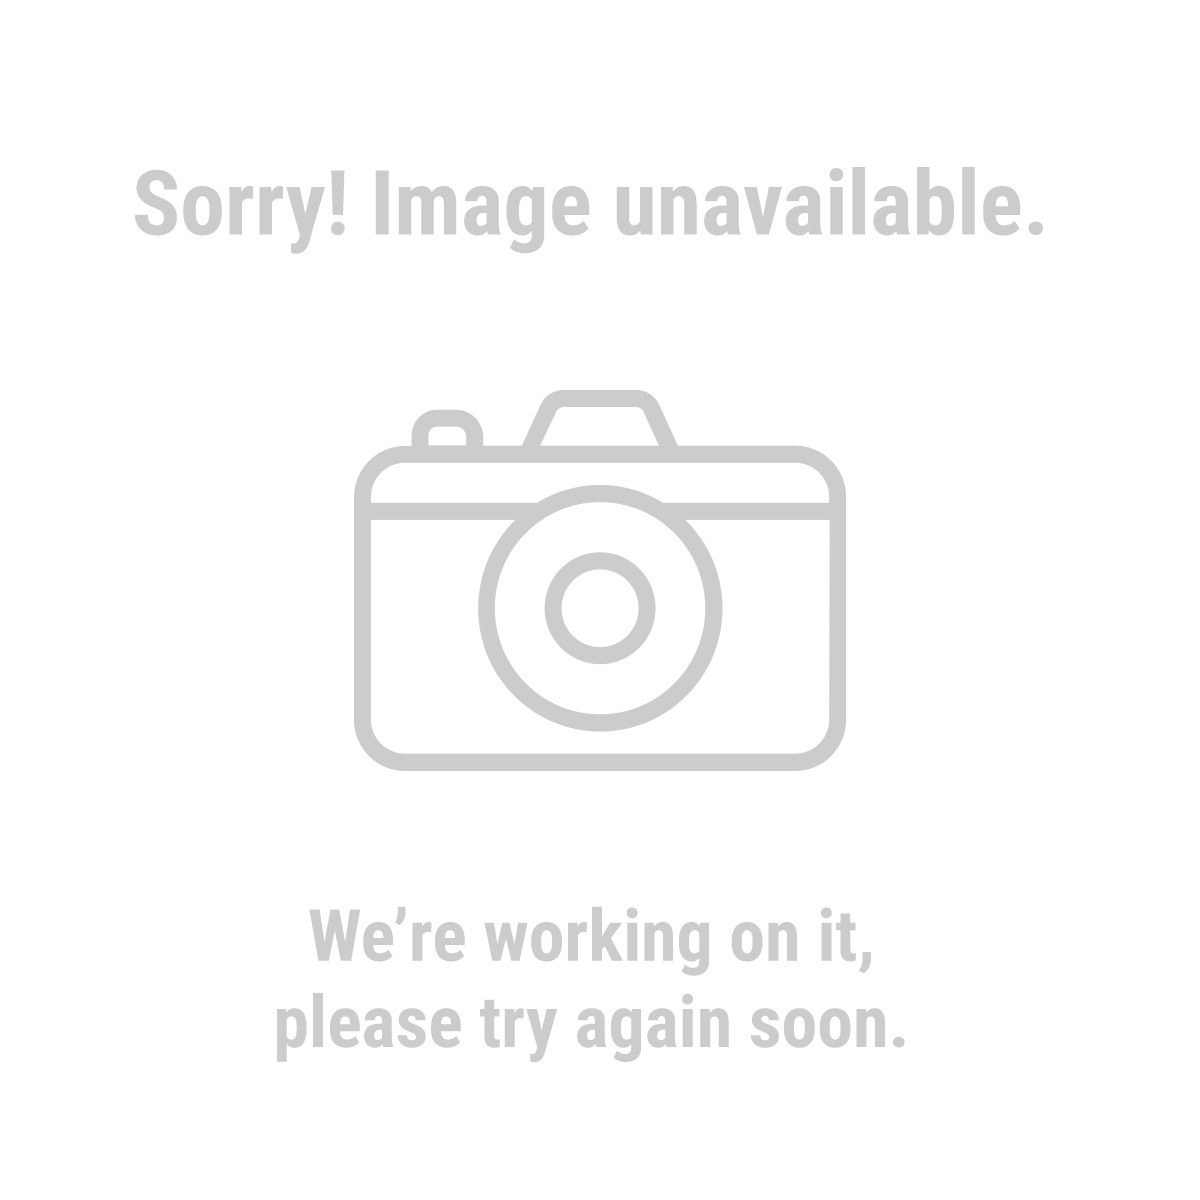 Bunker Hill Security® 60565 Color Security System with Two Cameras & Flat Panel Monitor